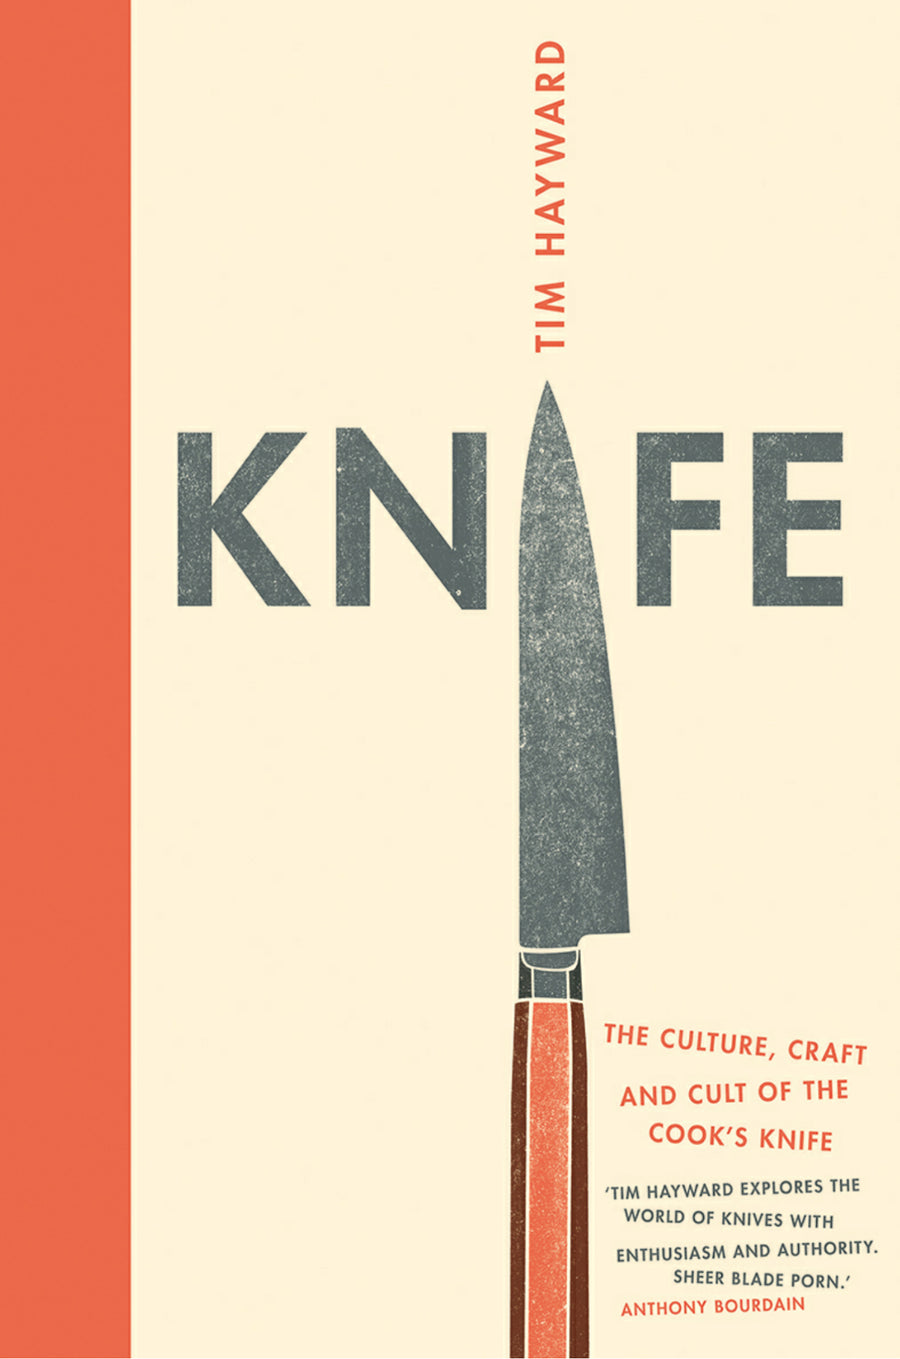 KNIFE - The Culture, Craft & Cult of the Cooks Knife by Tim Hayward